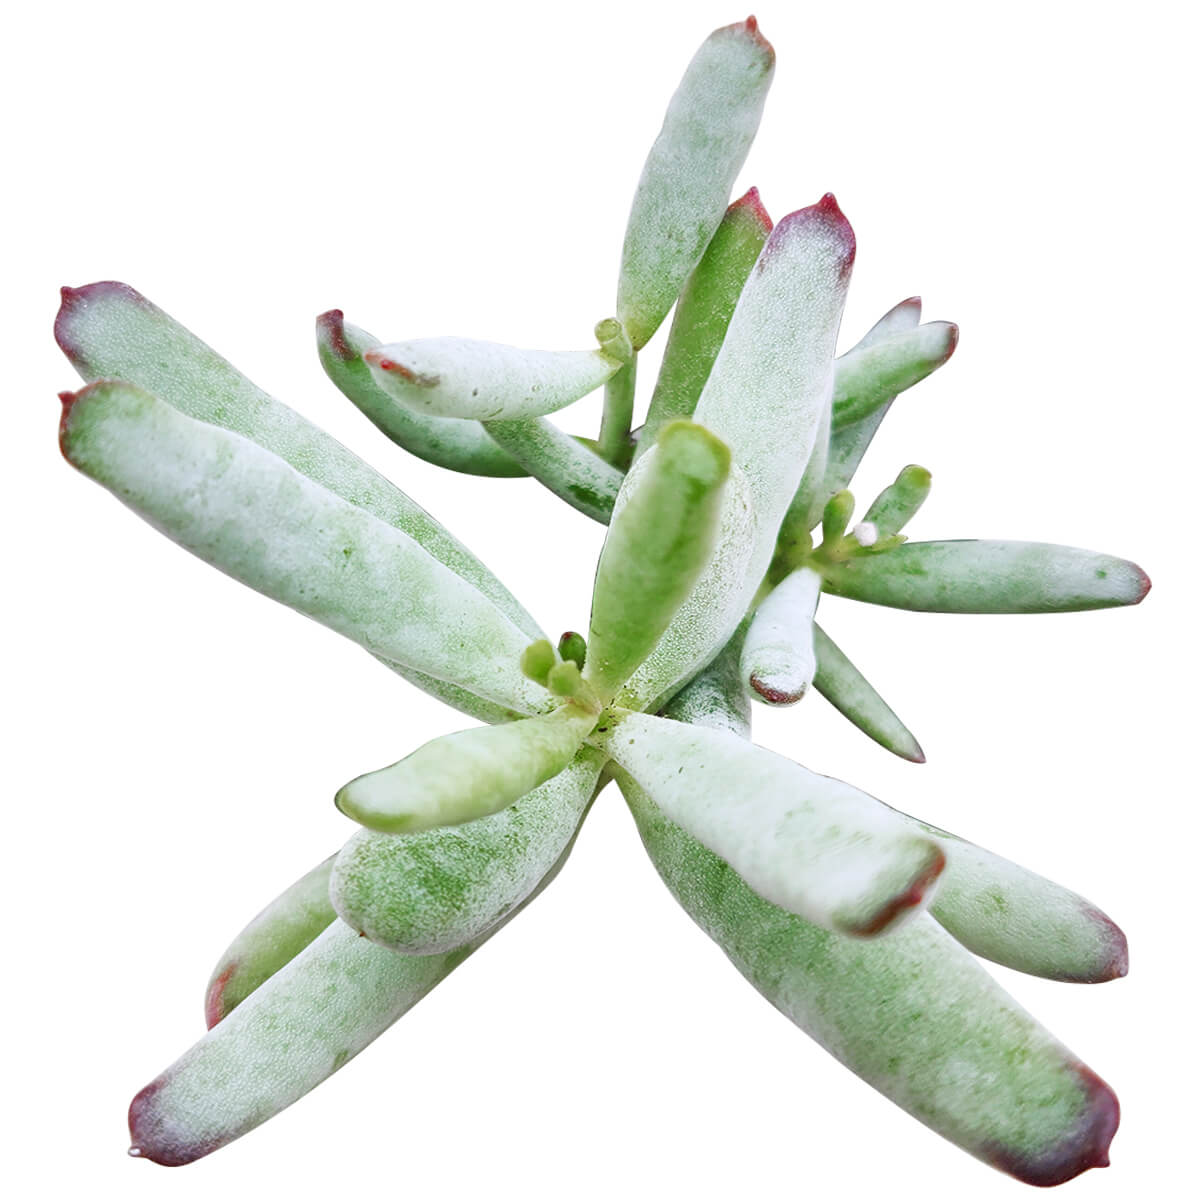 Cotyledon orbiculata var. flanaganii, succulent care tips, indoor succulents, monthly succulents, Succulents, succulent care guide, Succulents shop near me, succulents shop in California, succulent subscription, Cotyledon orbiculata in California, How to grow Cotyledon orbiculata